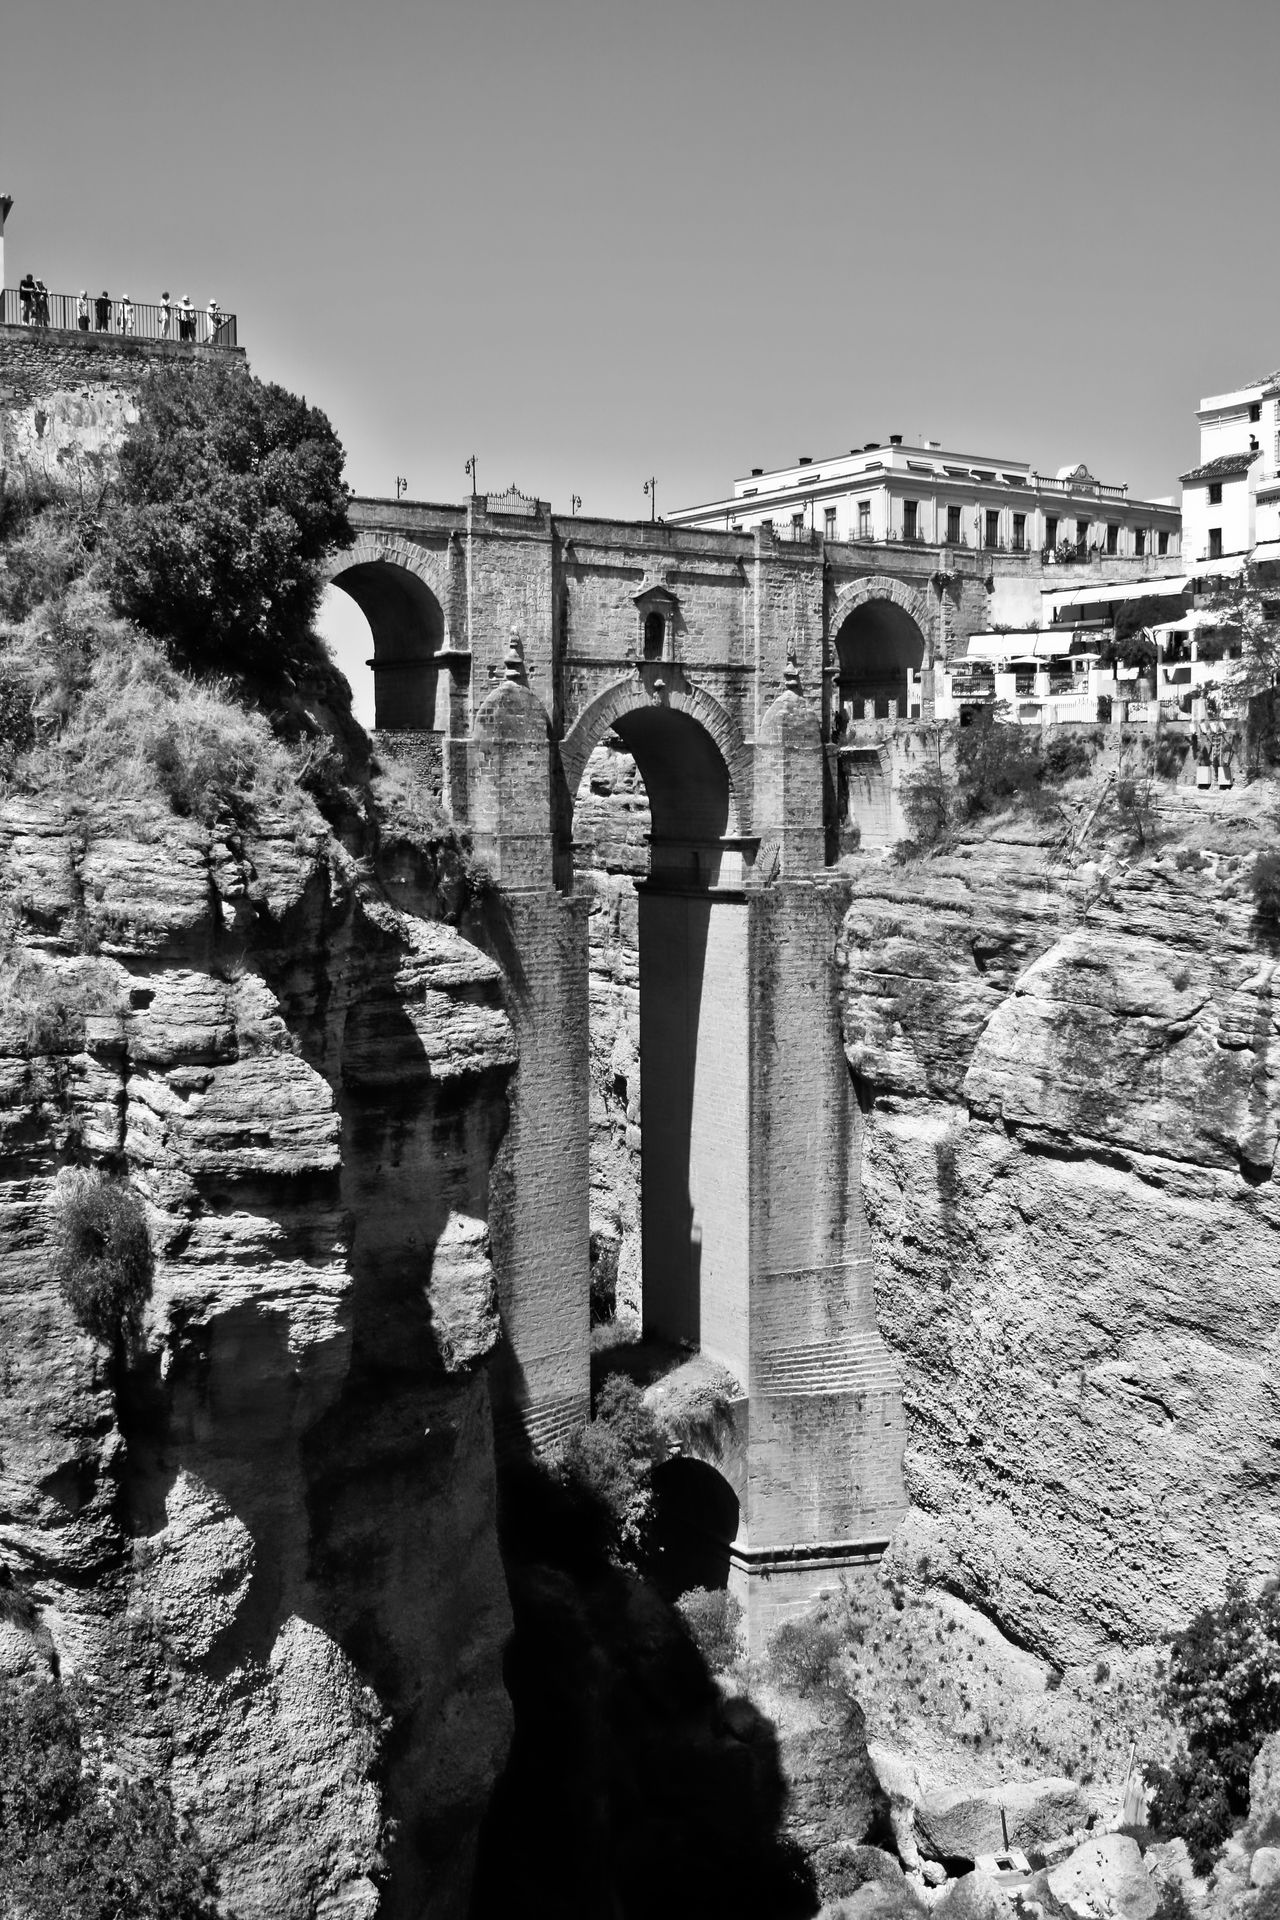 Arch Architectural Column Architecture Black & White Black And White Bridge Black And White Collection  Black And White Scenery Built Structure Historic Outdoors Ronda Bridge Ronda Bridge Black And White Ronda Scenery Ronda Spain Sky Travel Destinations